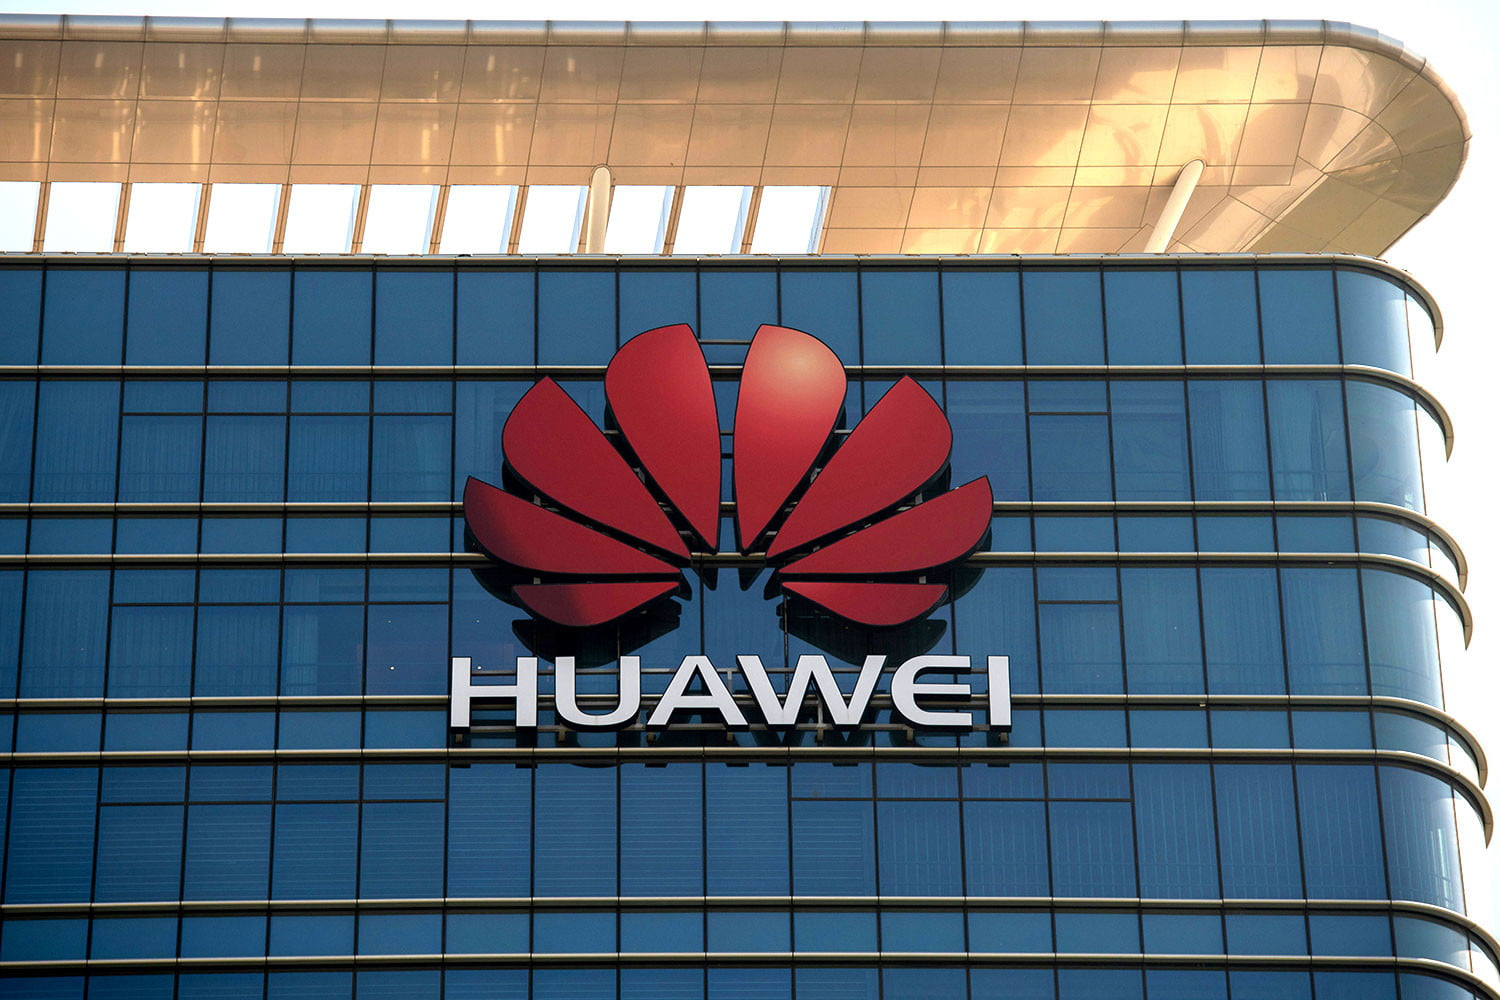 Huawei overcame sanctions to surpass Apple in 2019 global smartphone sales